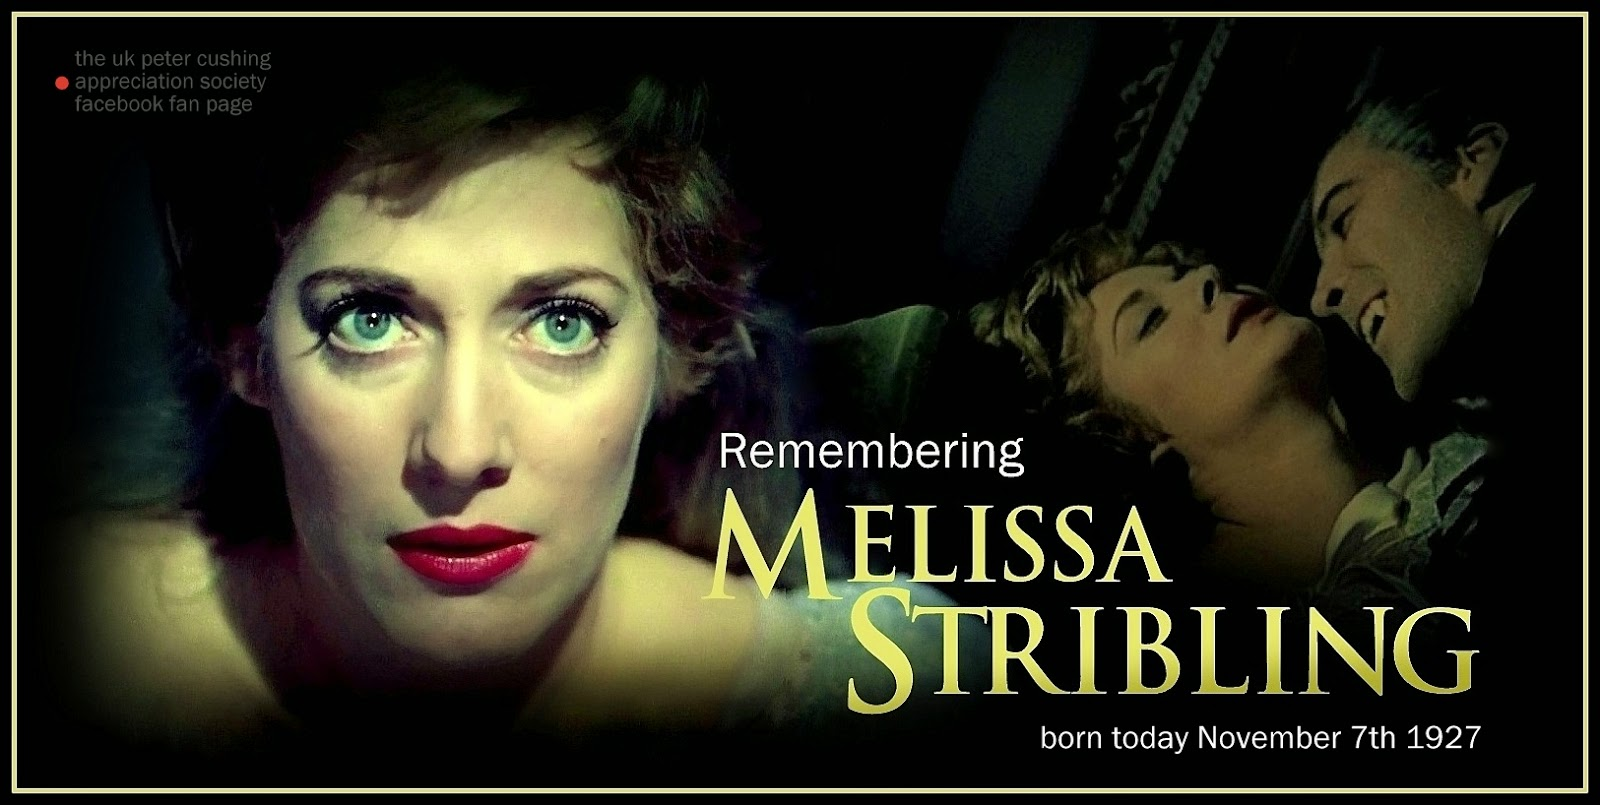 Watch Melissa Stribling video